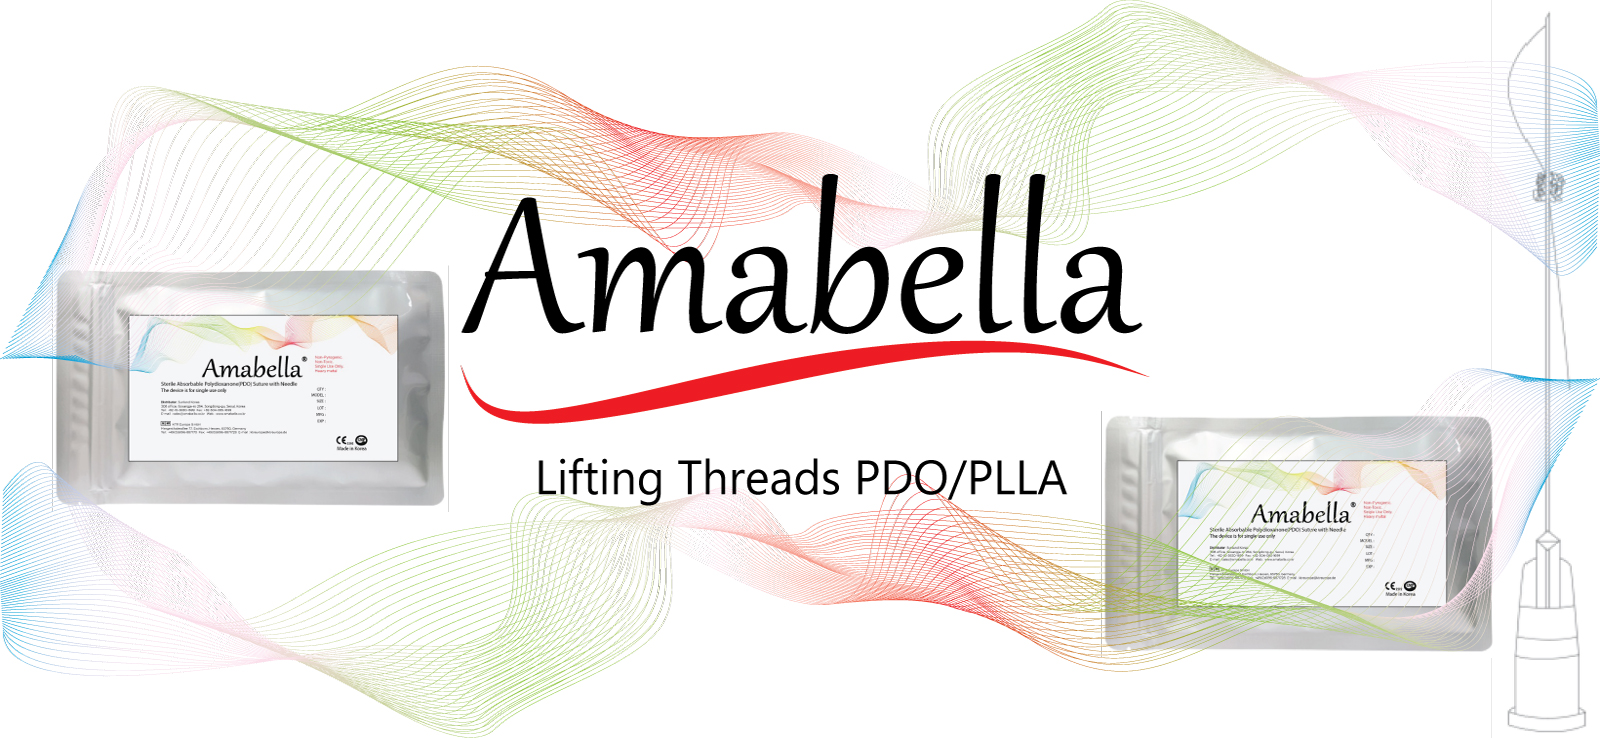 Amabella Lifting Threads